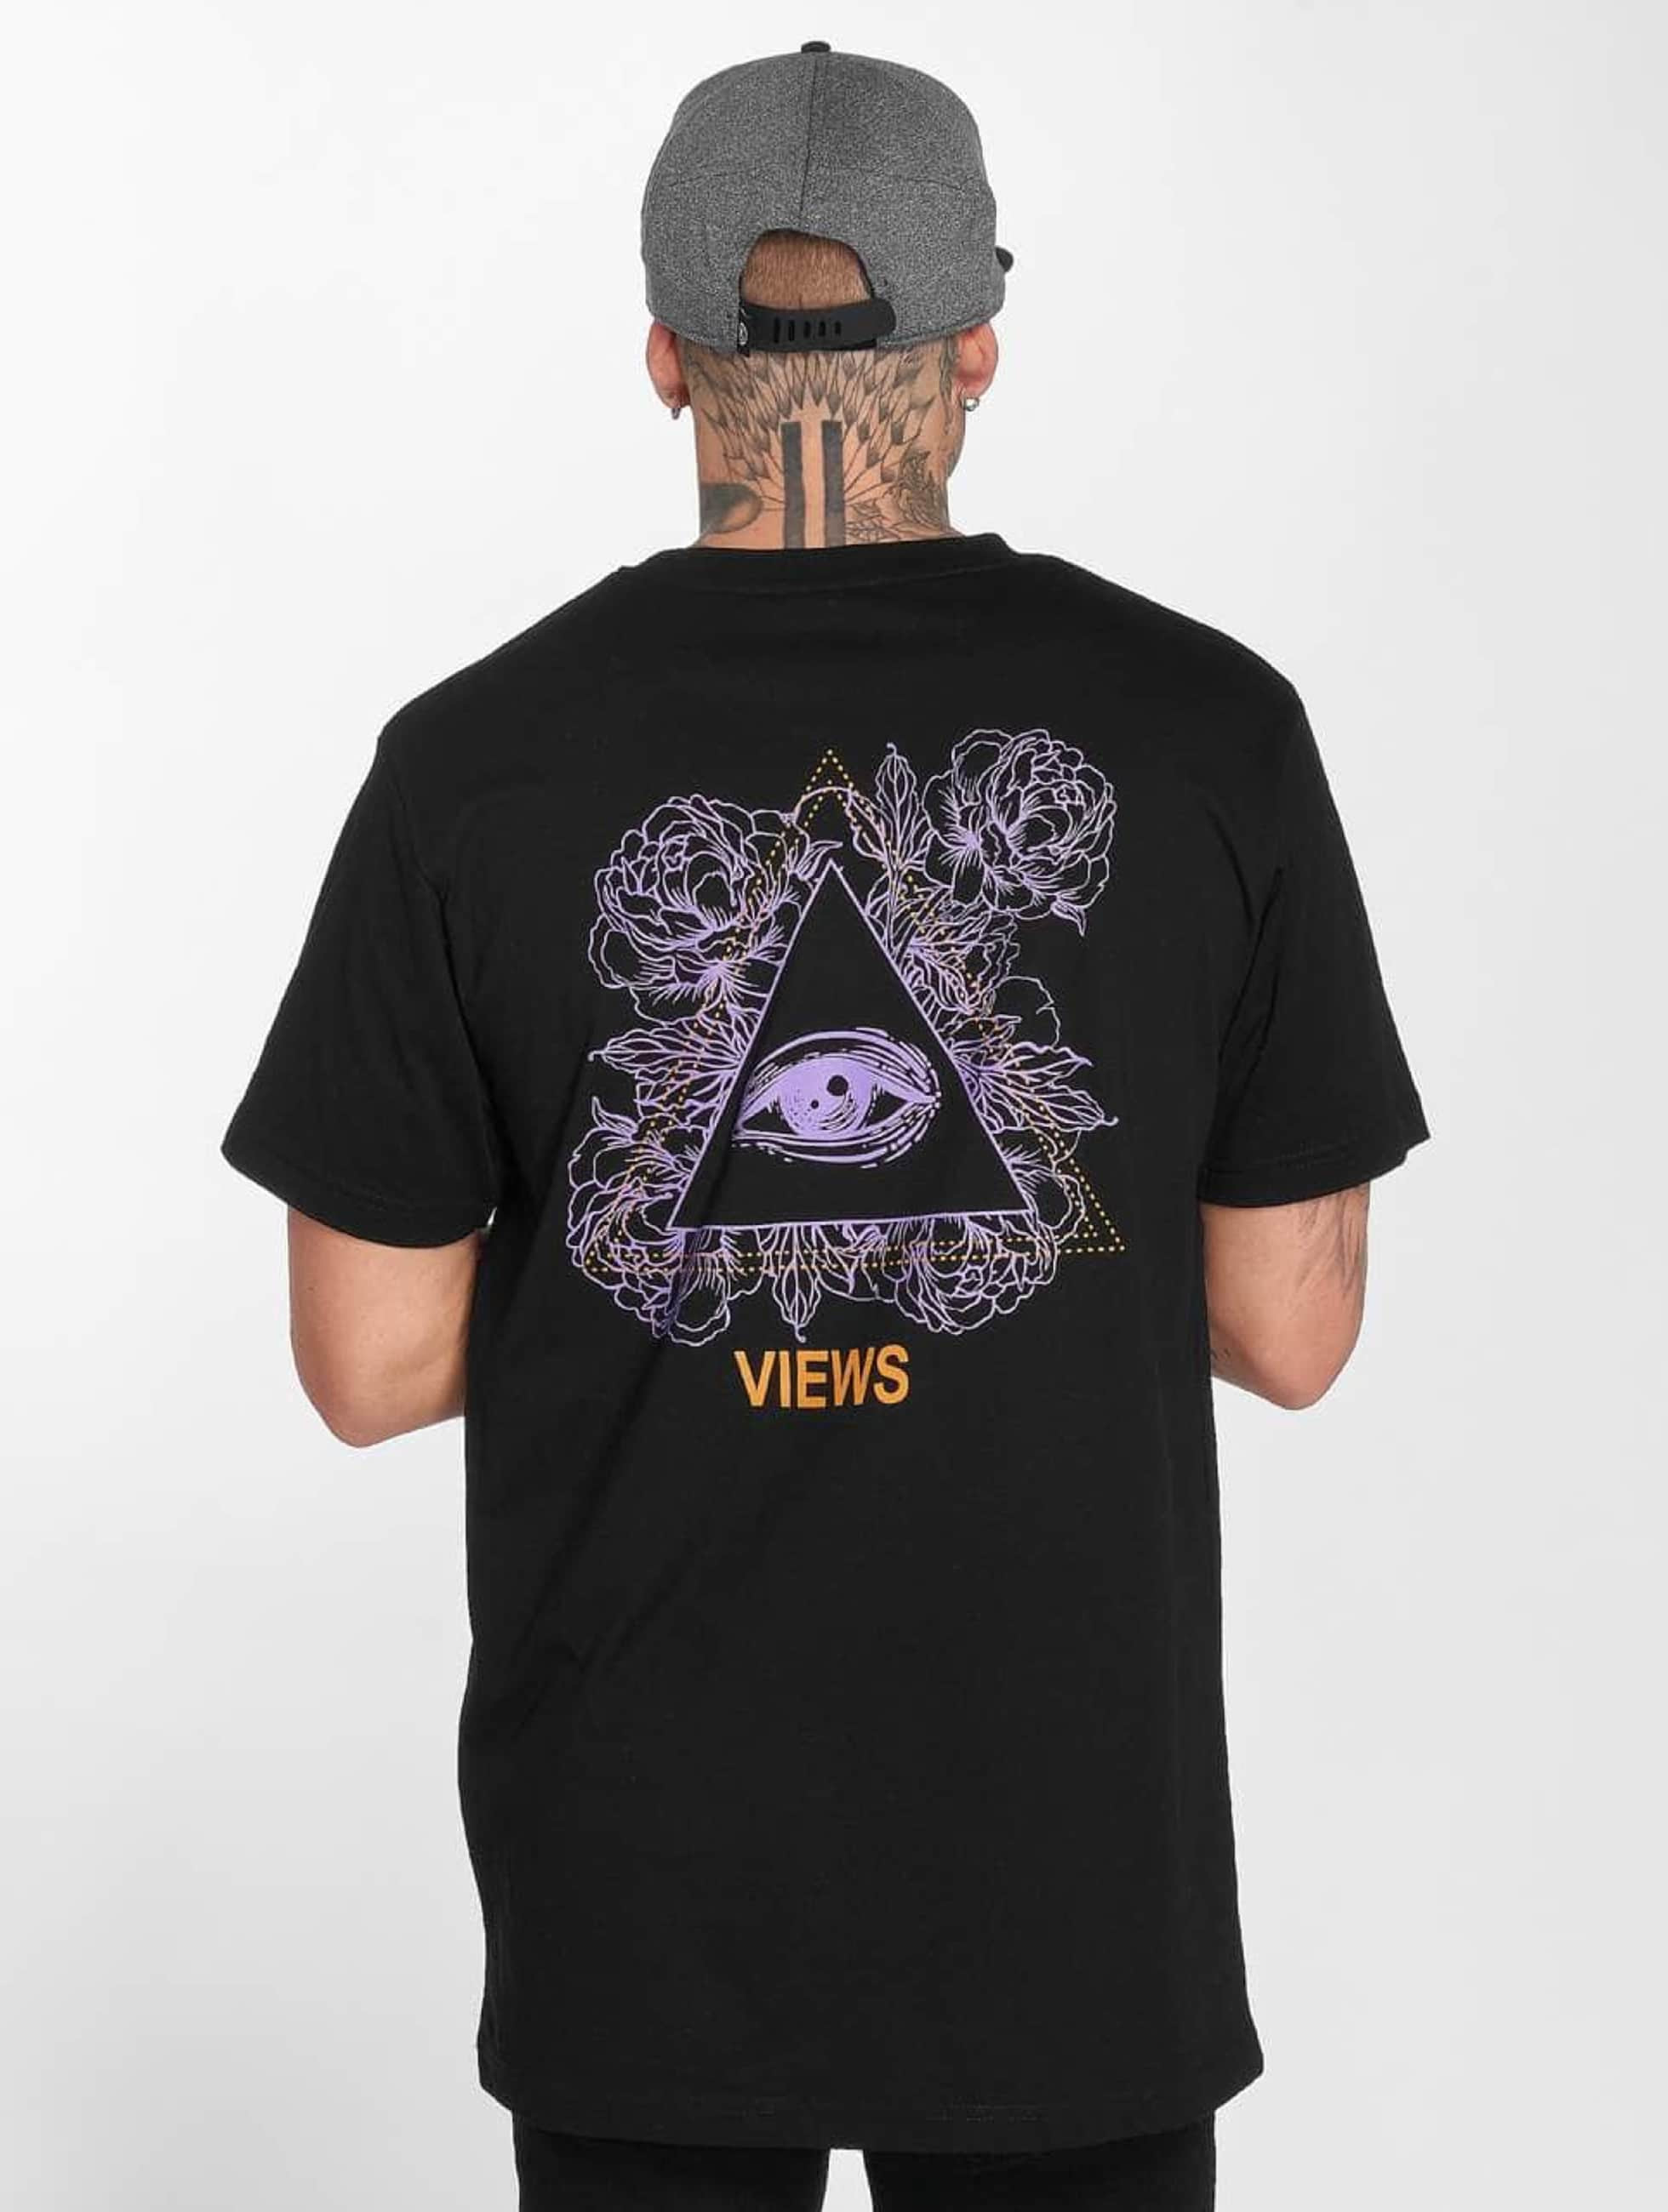 Mister Tee T-Shirt Views schwarz